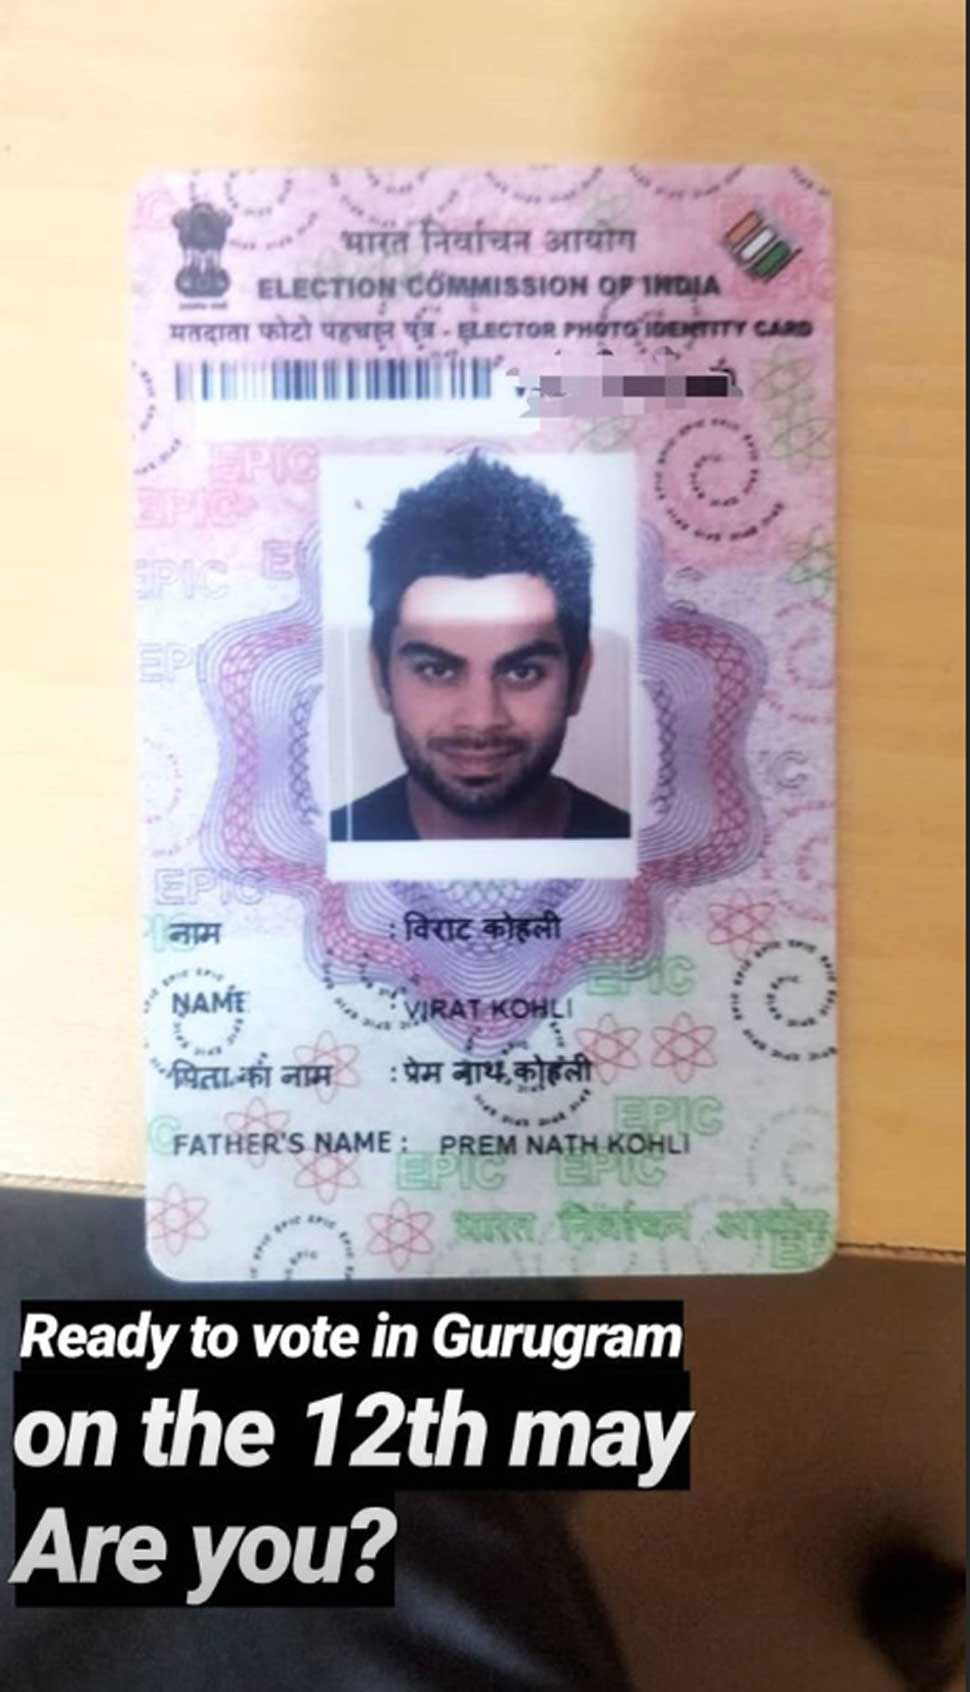 Virat insta post on Voter Id